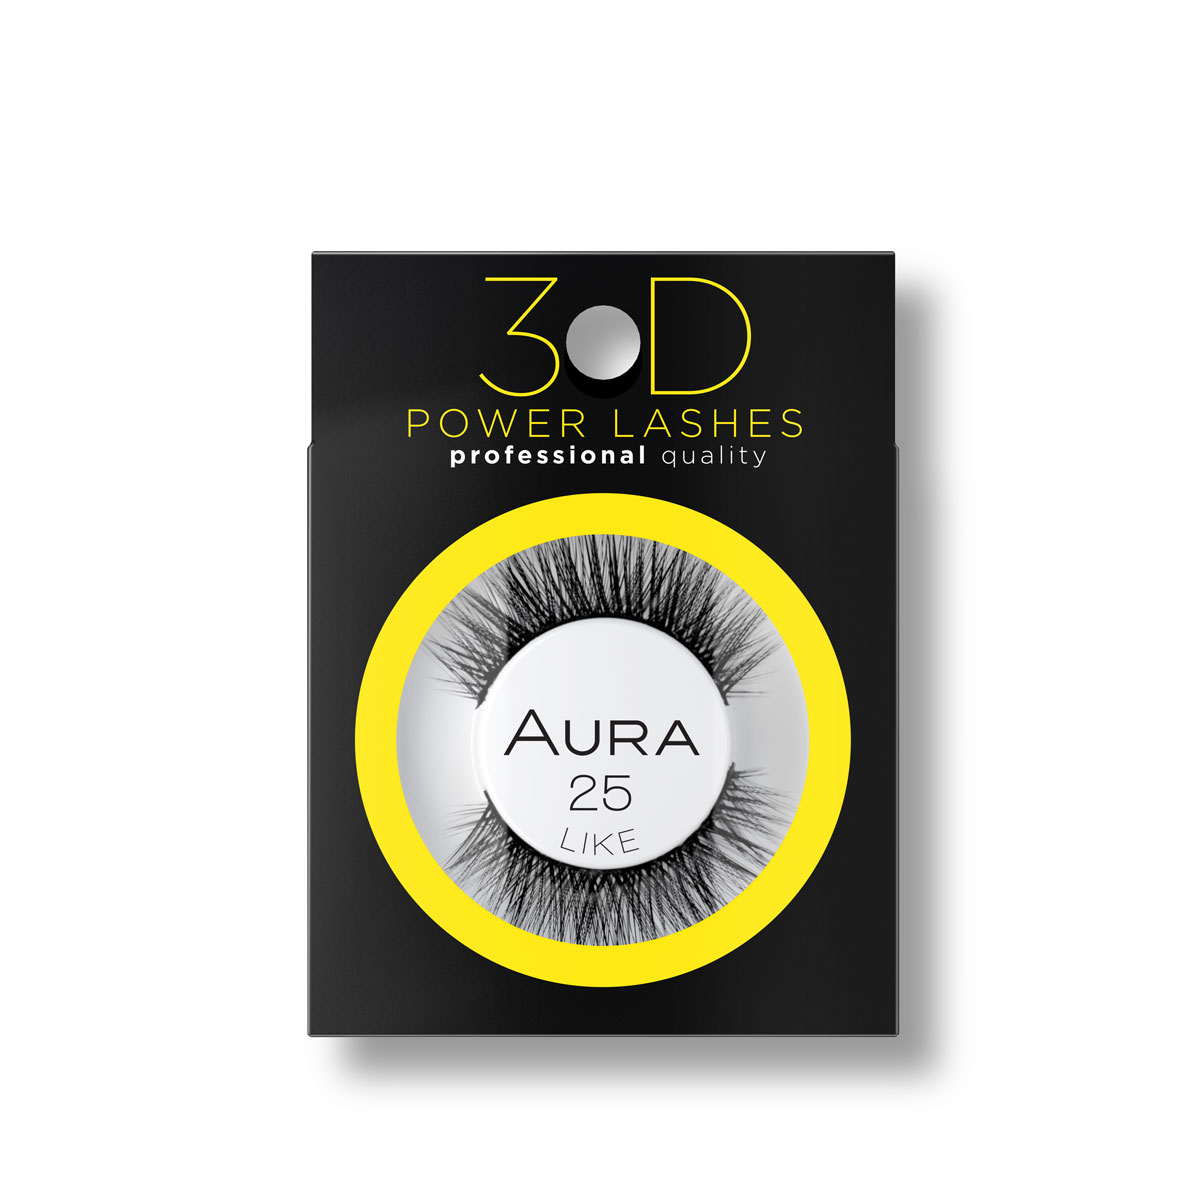 3D POWER LASHES 25 Like